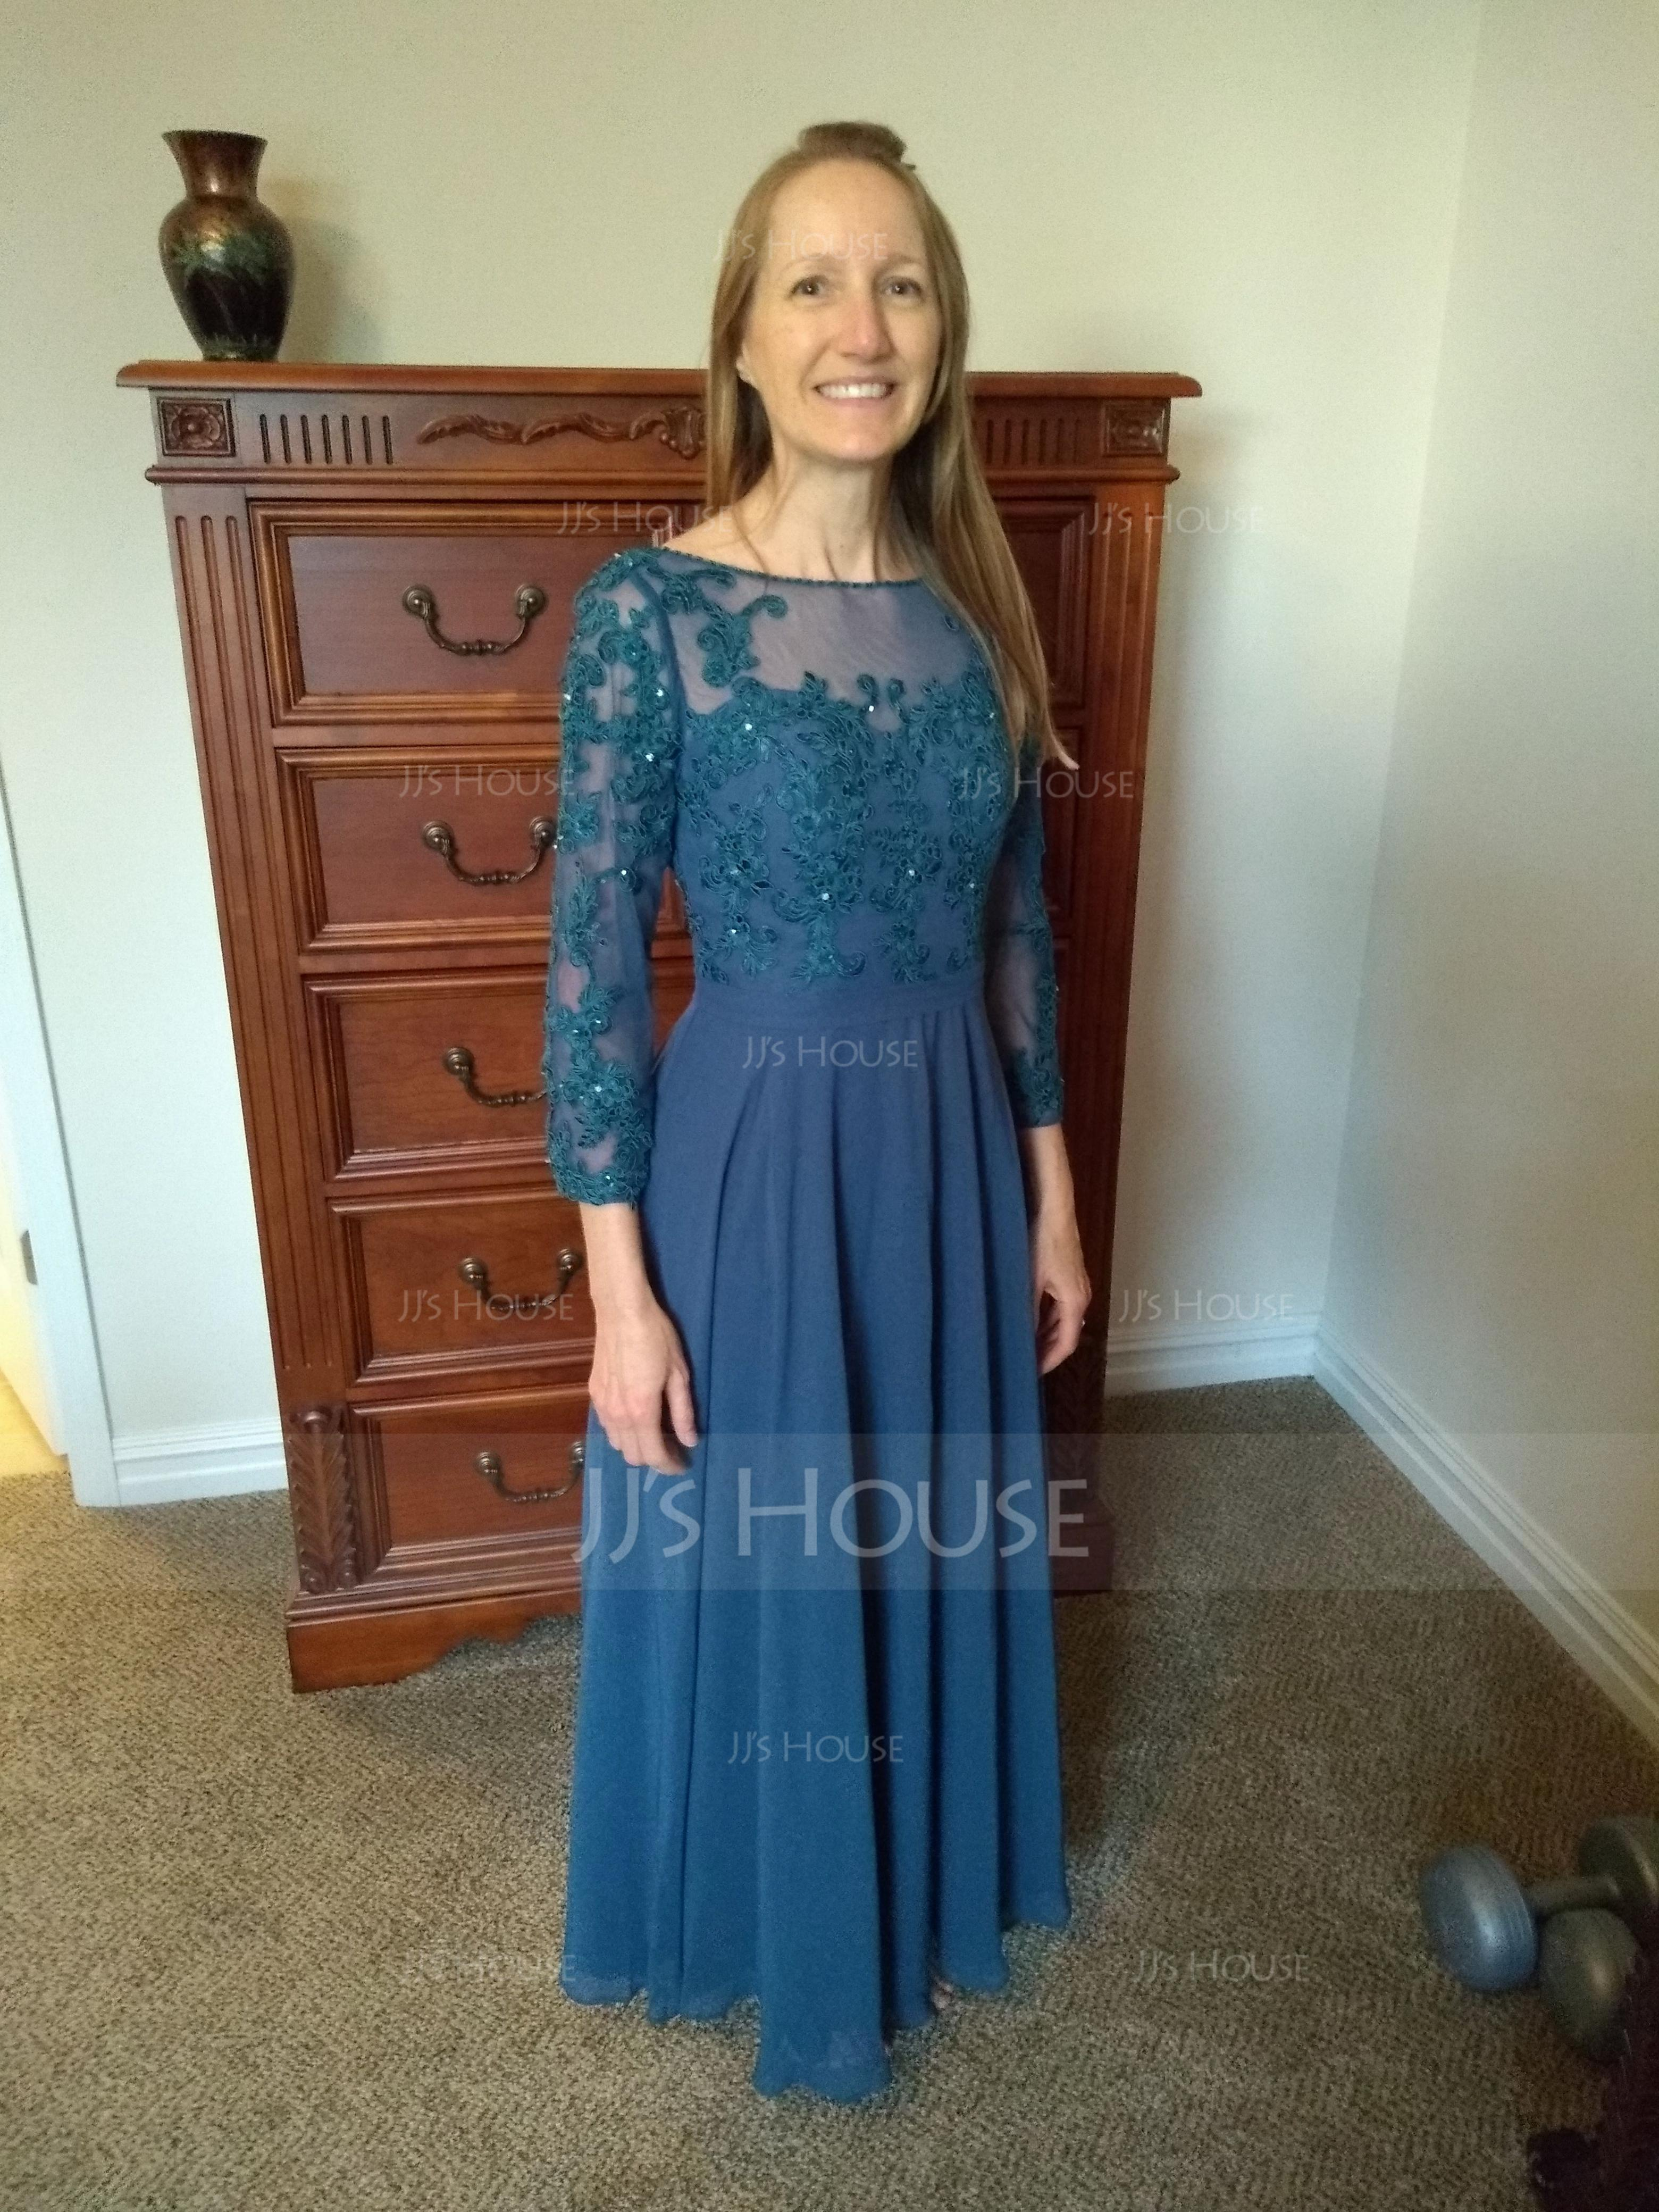 A-Line Scoop Neck Floor-Length Chiffon Mother of the Bride Dress With Beading Sequins (008091949)